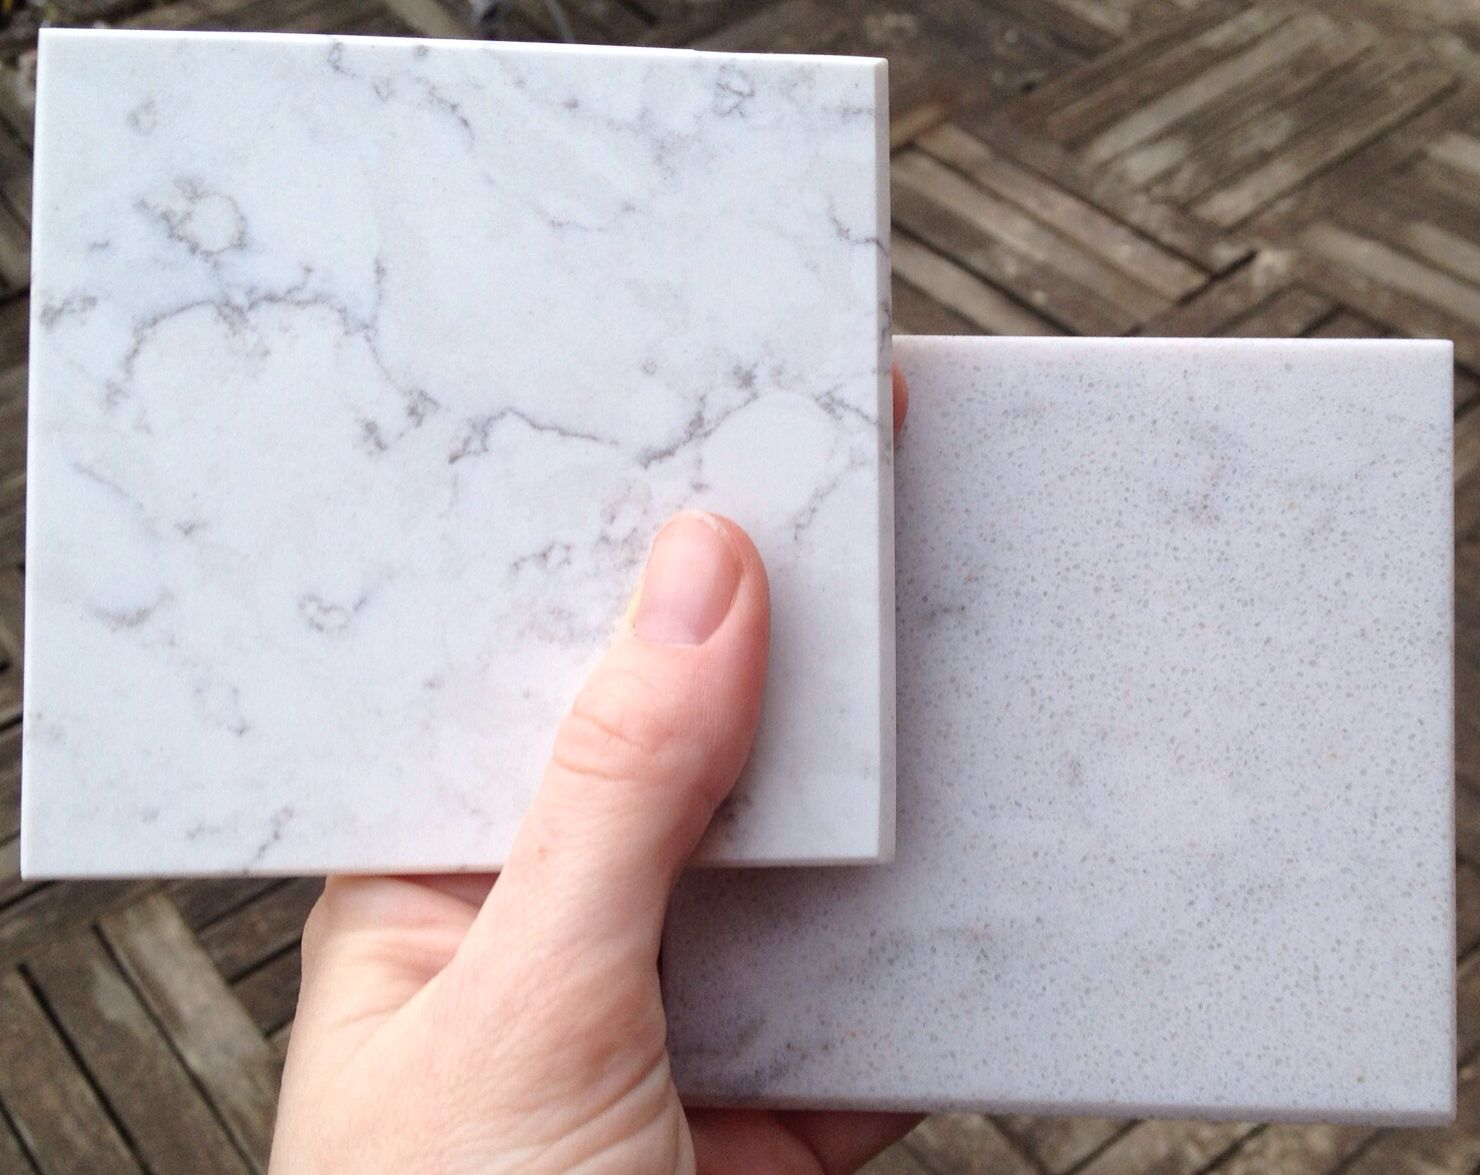 Silestone Blanco Orion To The Left Silestone Helix To The